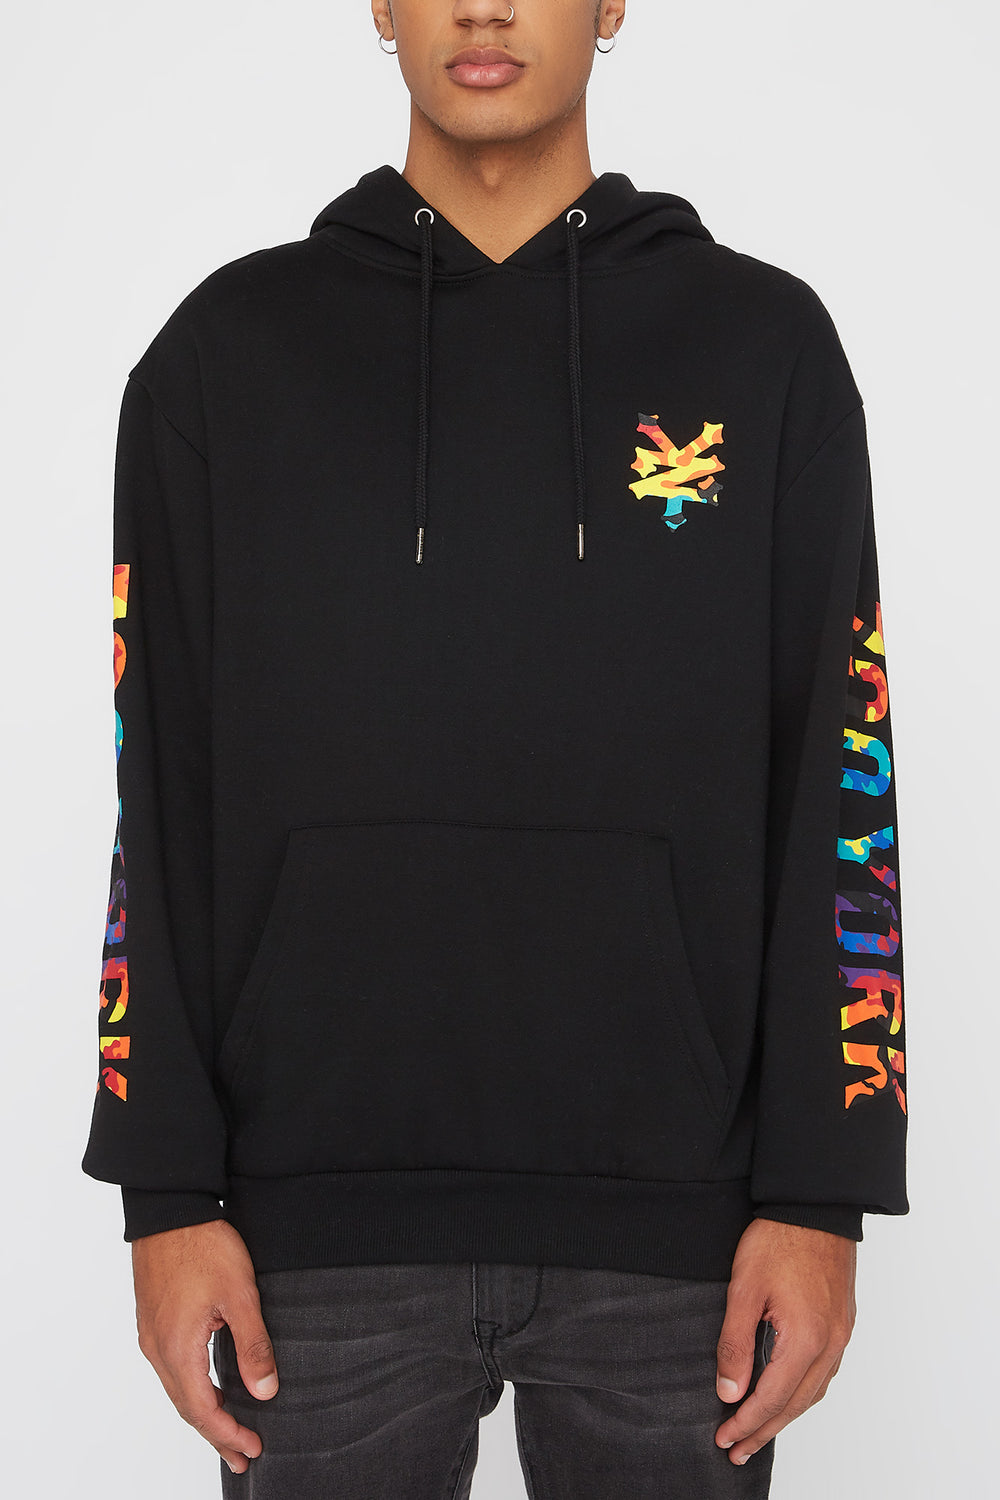 Zoo York Mens Rainbow Camo Logo Hoodie Black